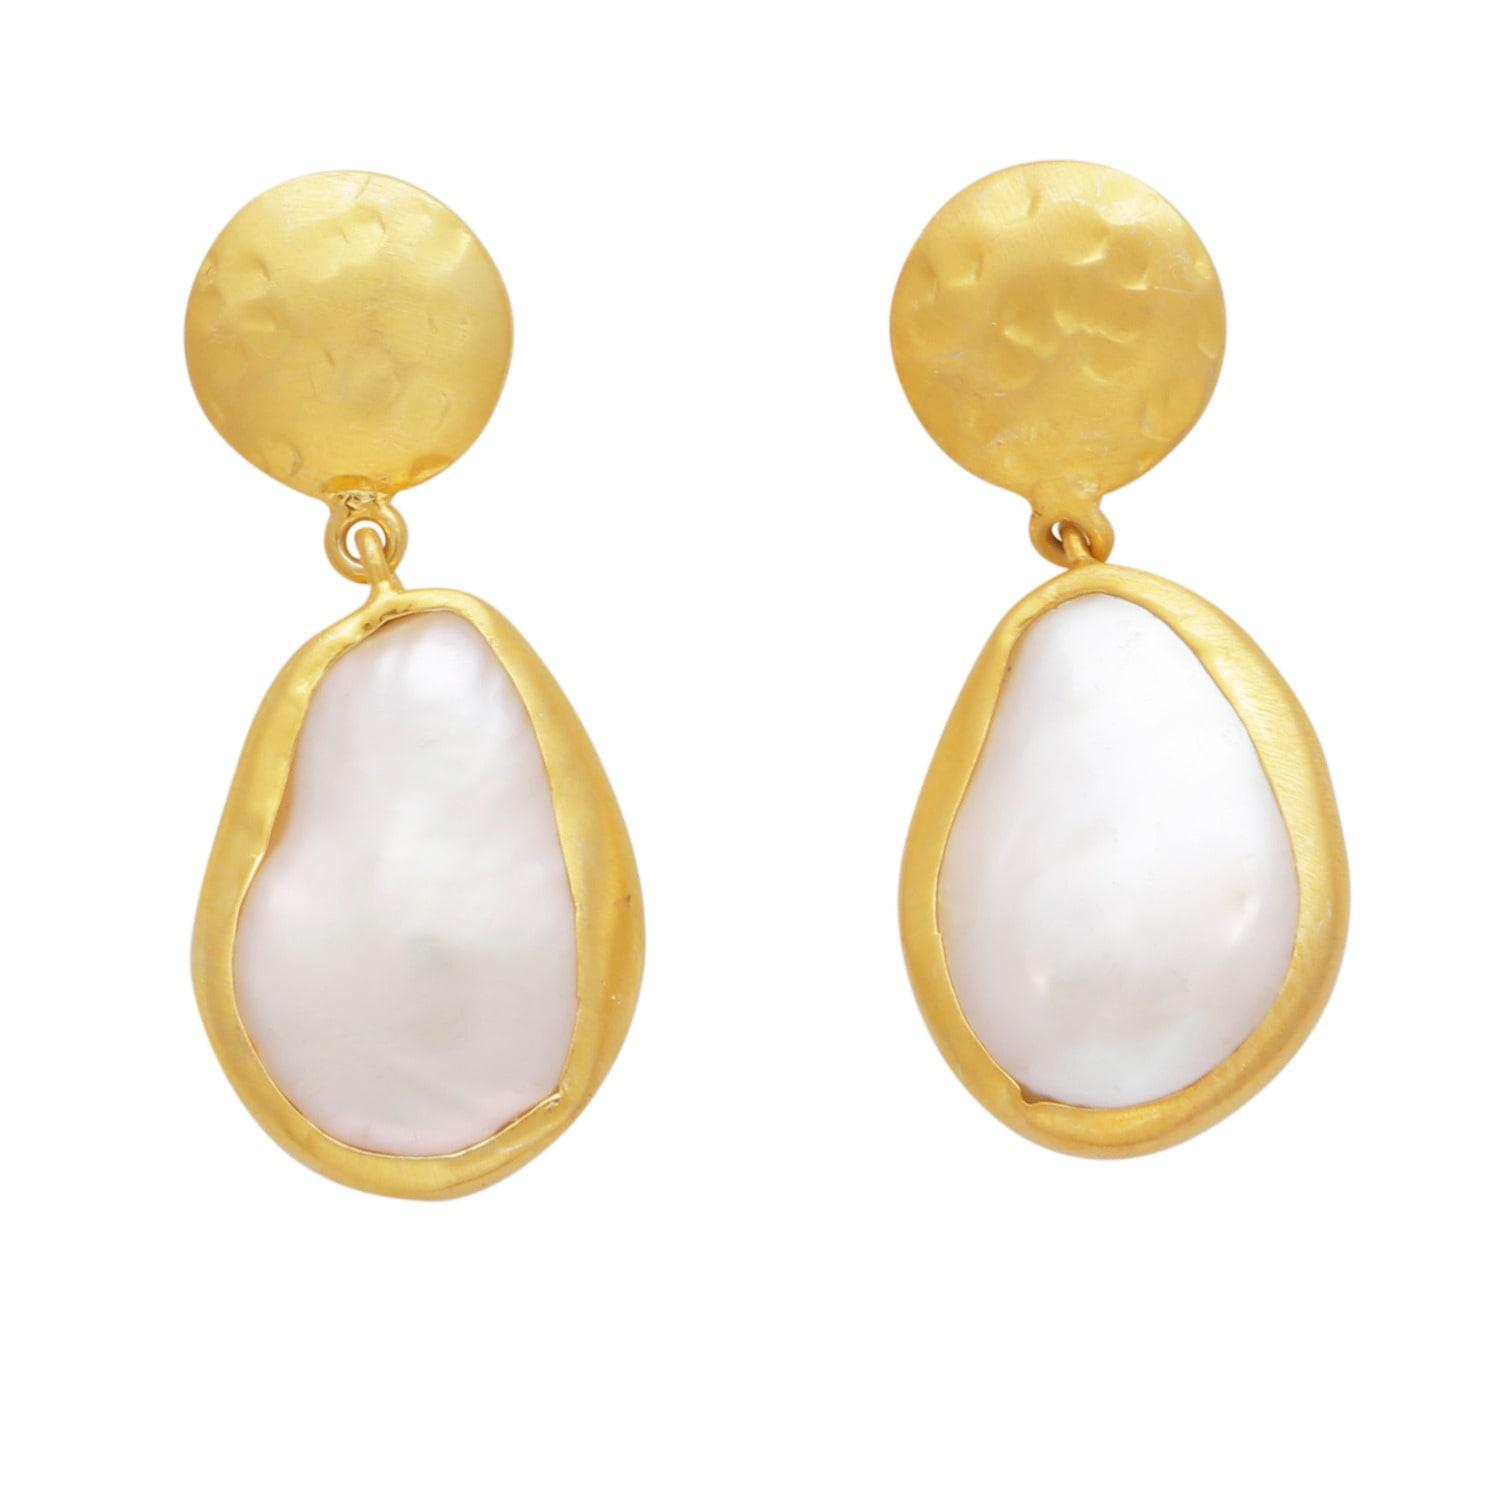 d4b8f2414 Carousel Jewels Pearl And Hammered Gold Nugget Earrings in Metallic ...